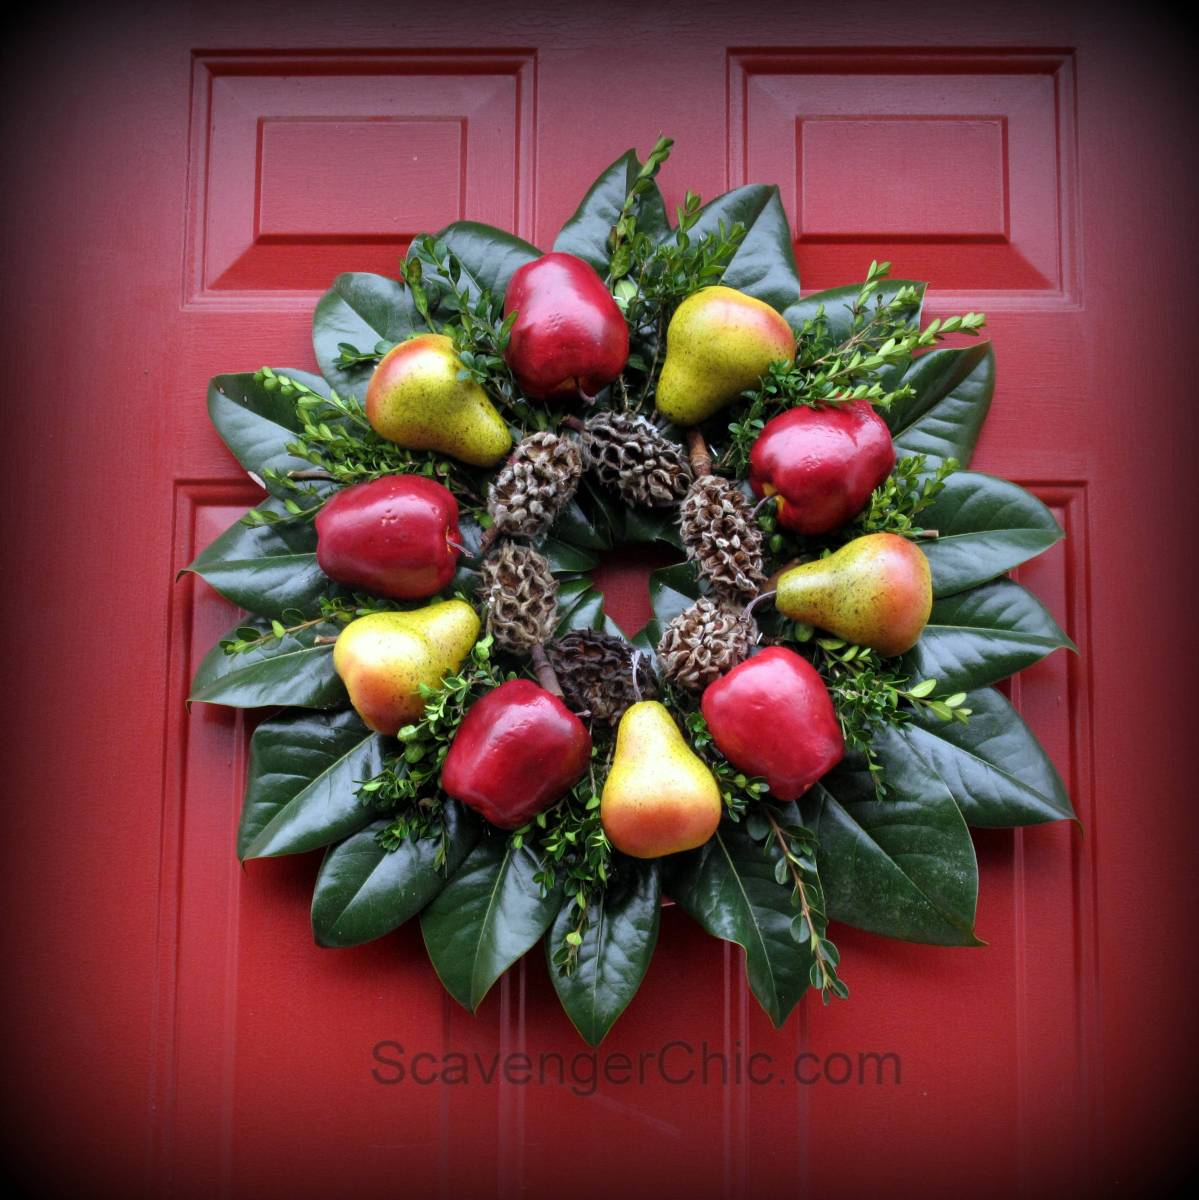 Williamsburg Christmas Decorating Ideas: Williamsburg Inspired Christmas Fruit Wreath Diy